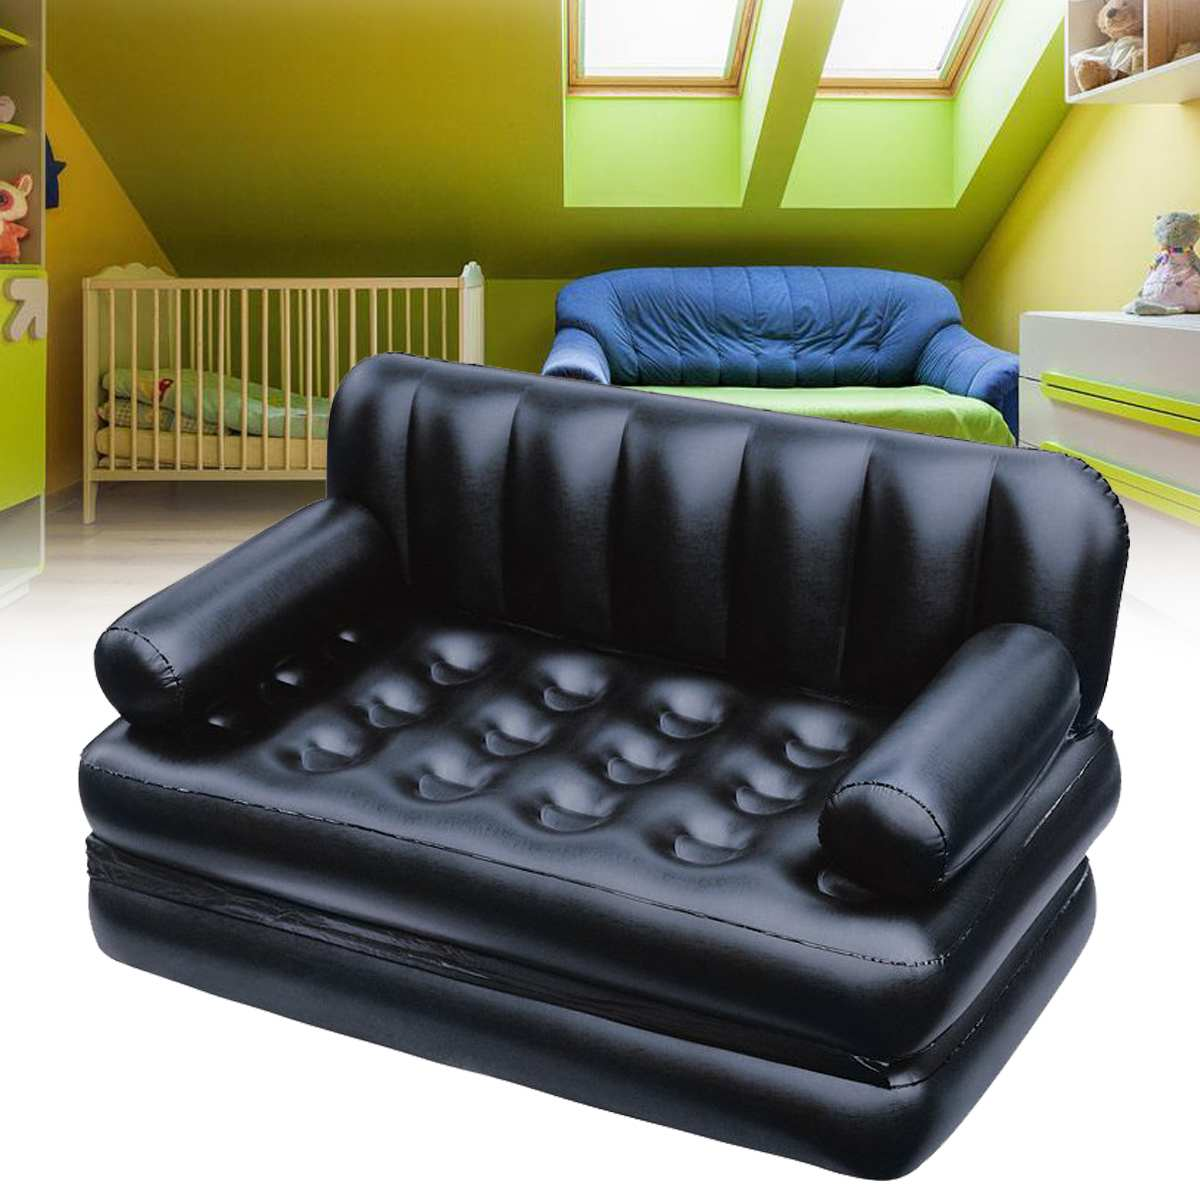 Large Inflatable Garden Sofa Lounge Blow Up Double Air Bed Multifunction Couch Camping Mattress Airbed Outdoor Furniture Black